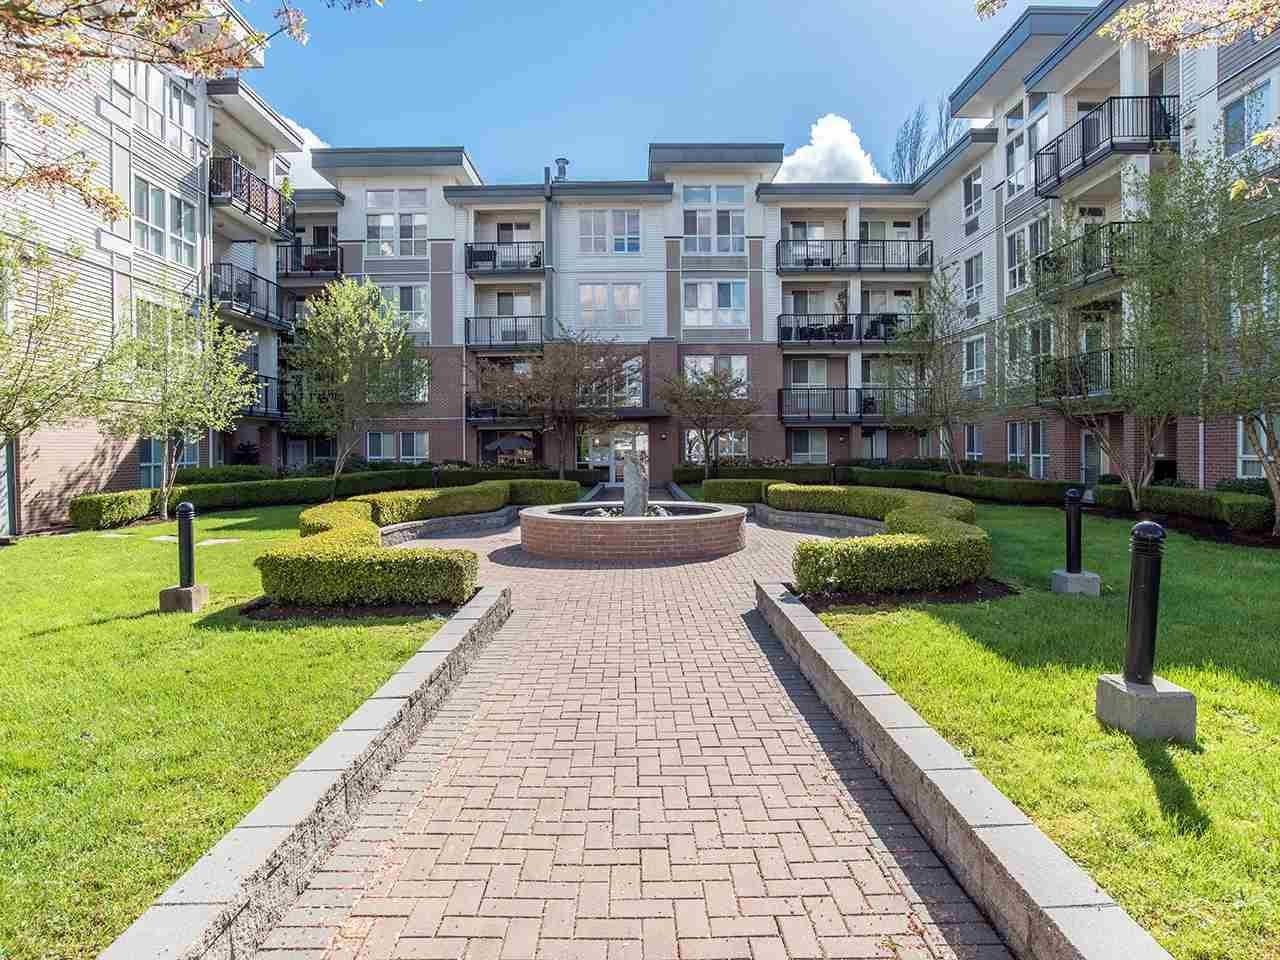 R2159119 - 216 5430 201 STREET, Langley City, Langley, BC - Apartment Unit